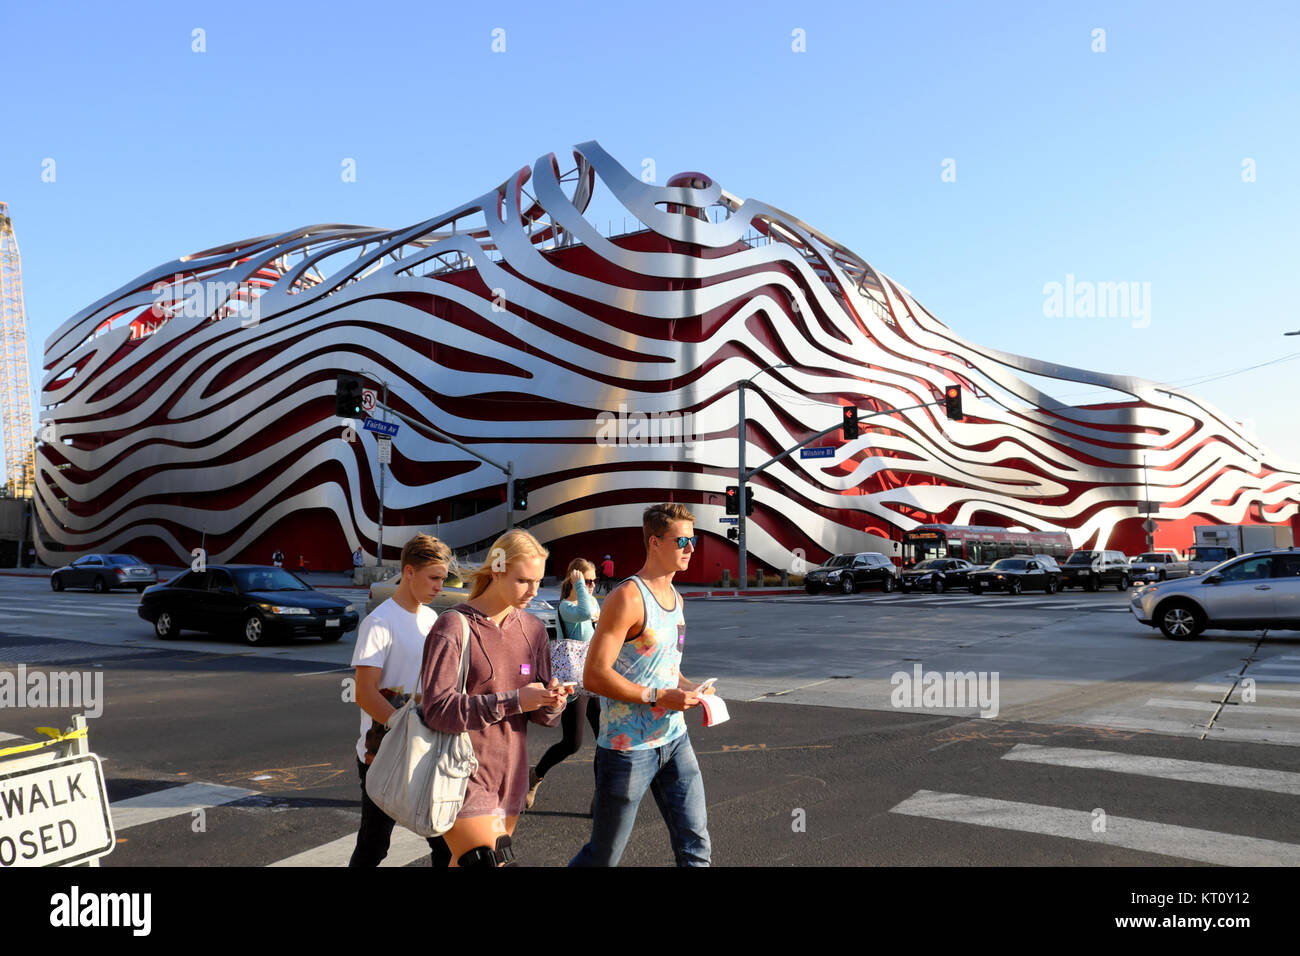 Group of young teenage tourists walking along Wilshire Blvd. past Petersen Automotive Museum building in Los Angeles, - Stock Image